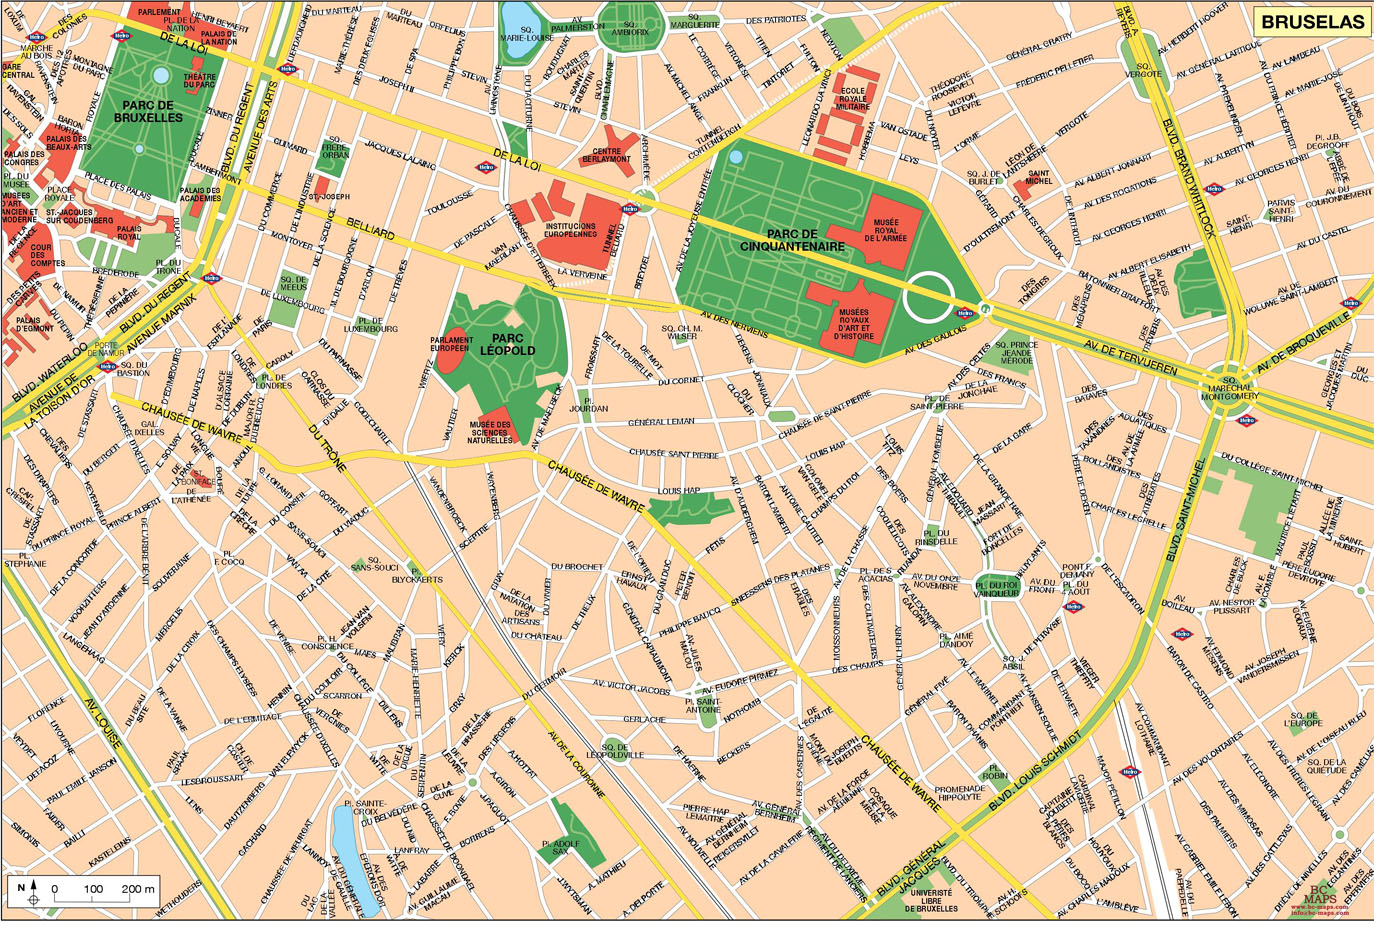 Brussels Vector city maps eps illustrator freehand Corel draw